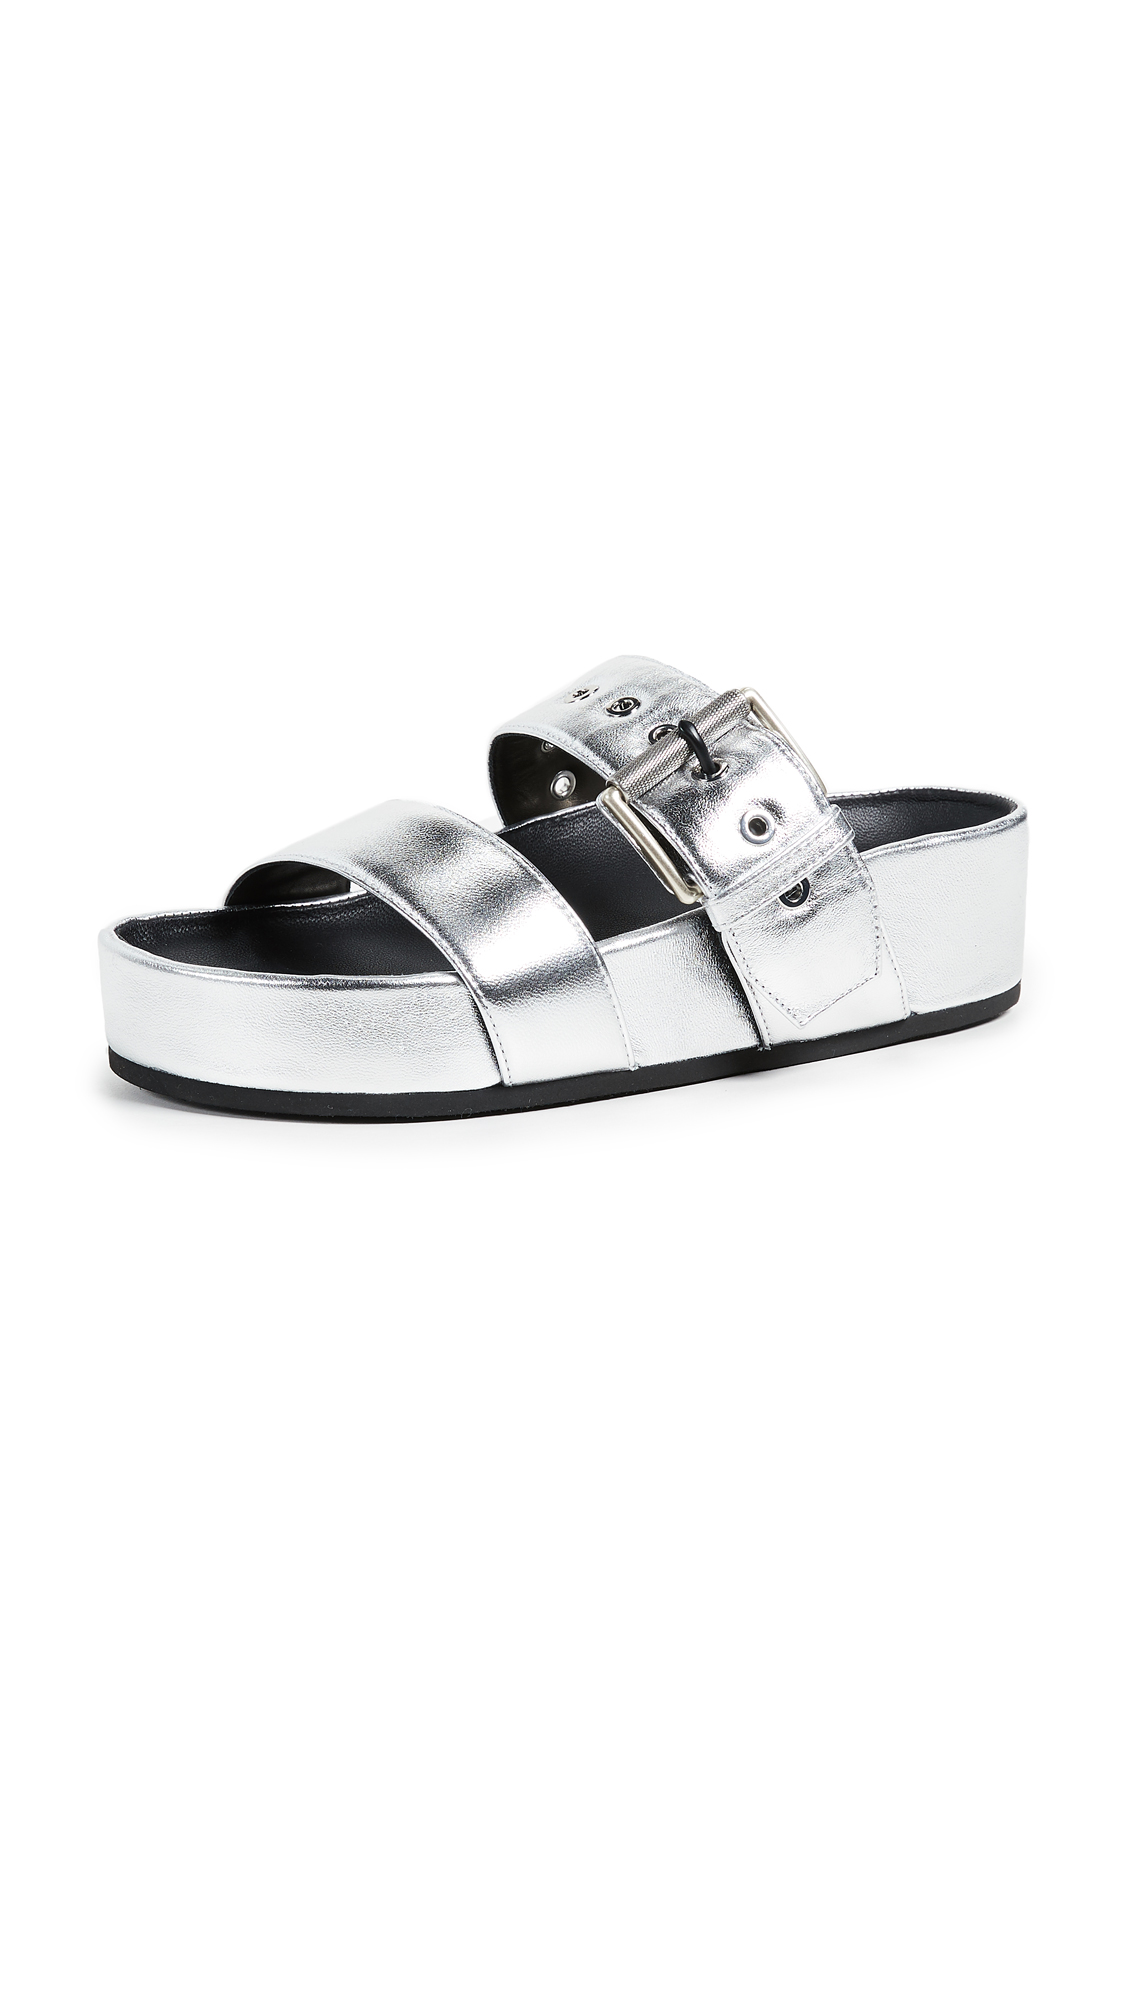 Rag & Bone Evin Buckle Slides - Silver